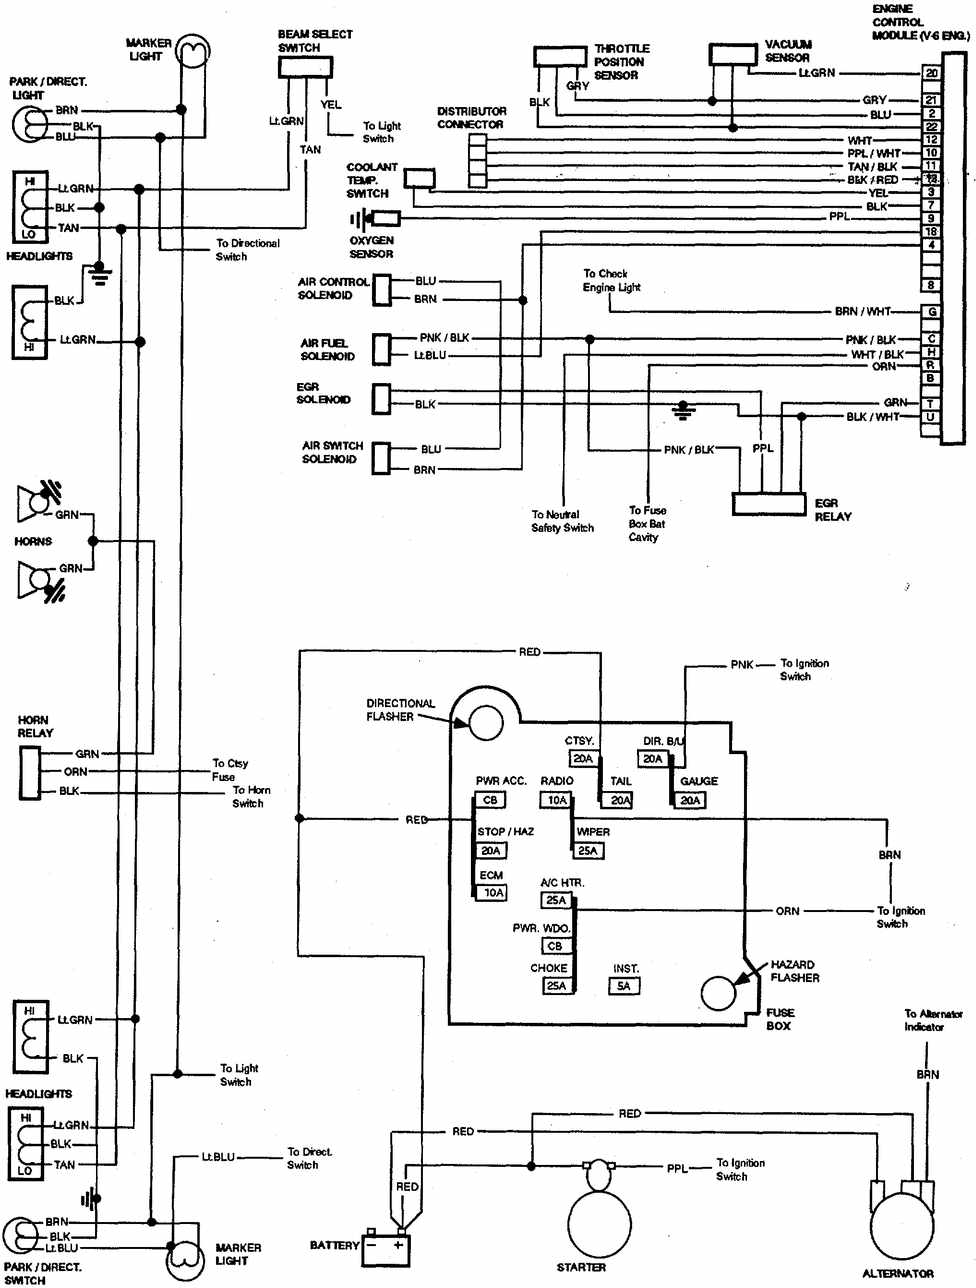 5 4l Engine Diagram 1999 F250 Wiring And Fuse Box 2008 Ford F350 7 Pin Trailer Additionally Chevrolet V8 Trucks 1981 1987 2007 F150